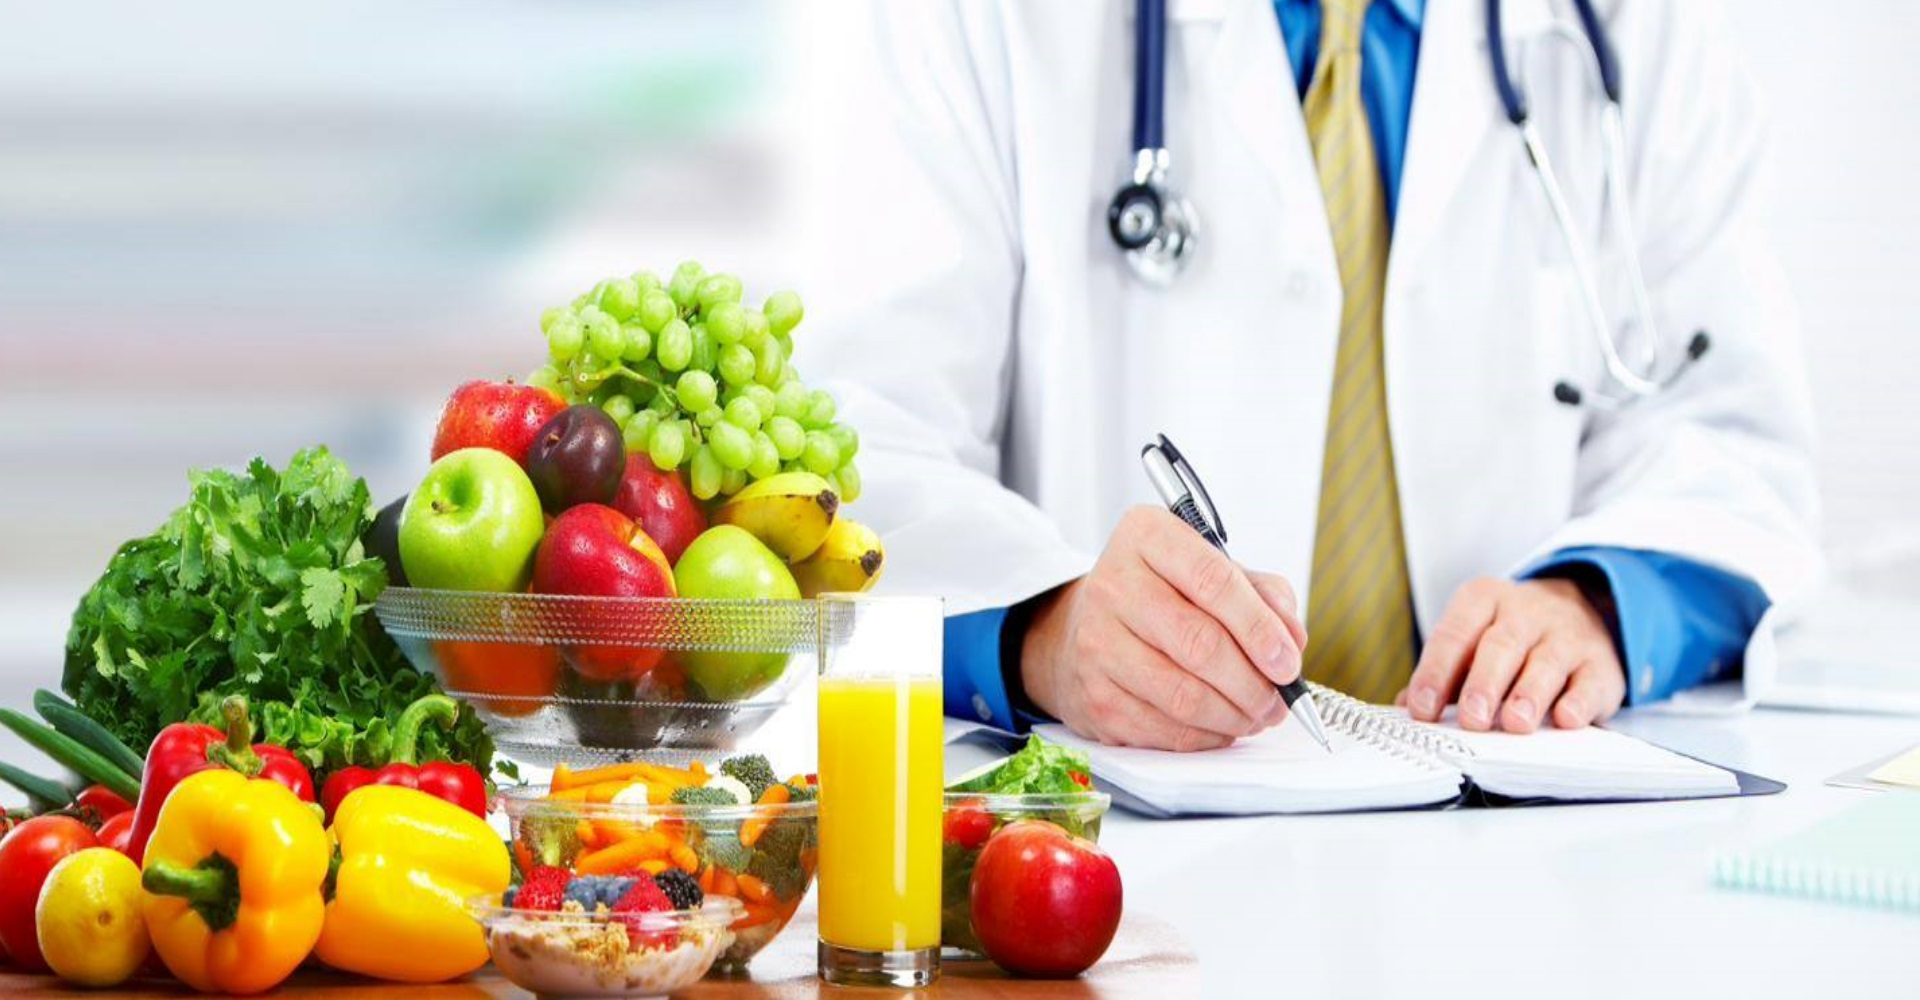 Health and Nutrition Specialist